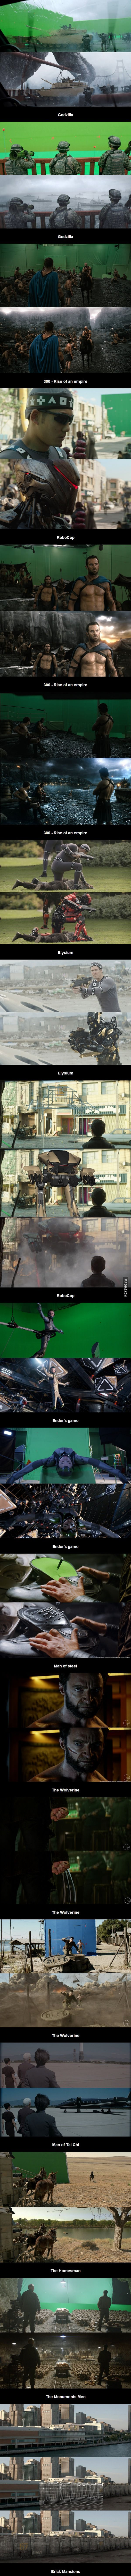 Movies visual effects